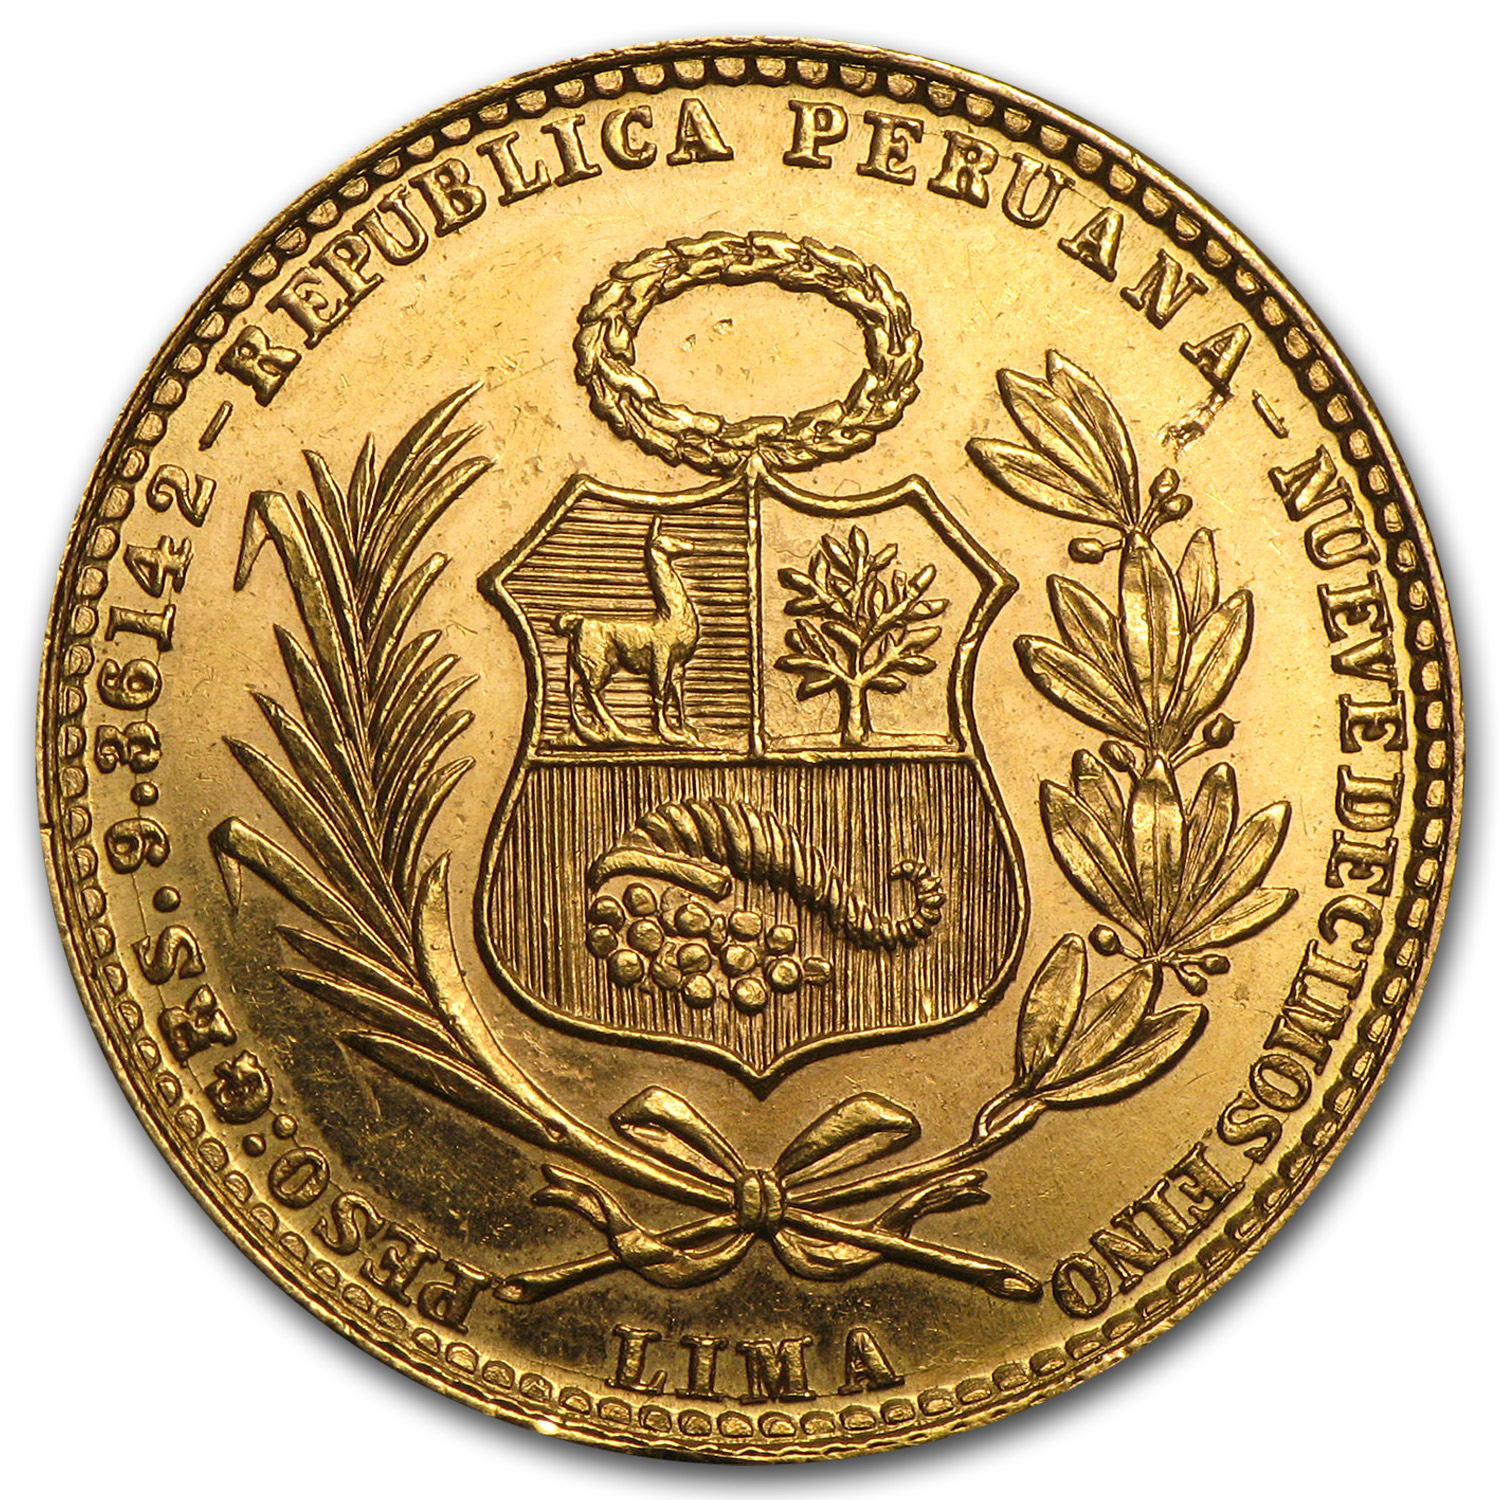 Peru 20 Soles Gold AU or Better Liberty